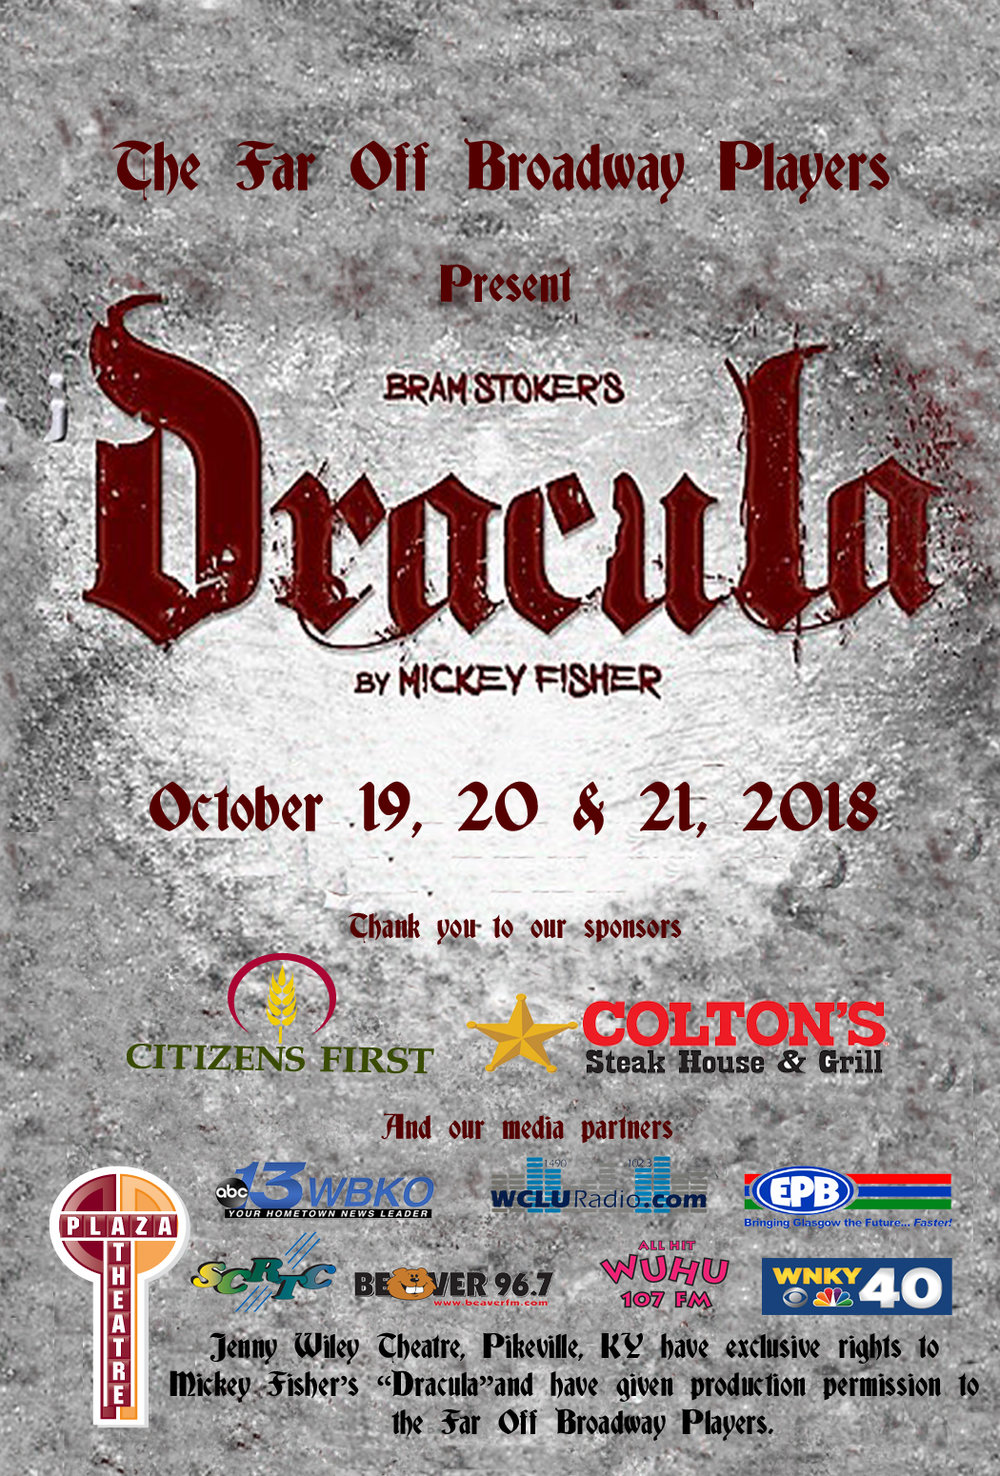 Page 1 Dracula Program Cover.jpg